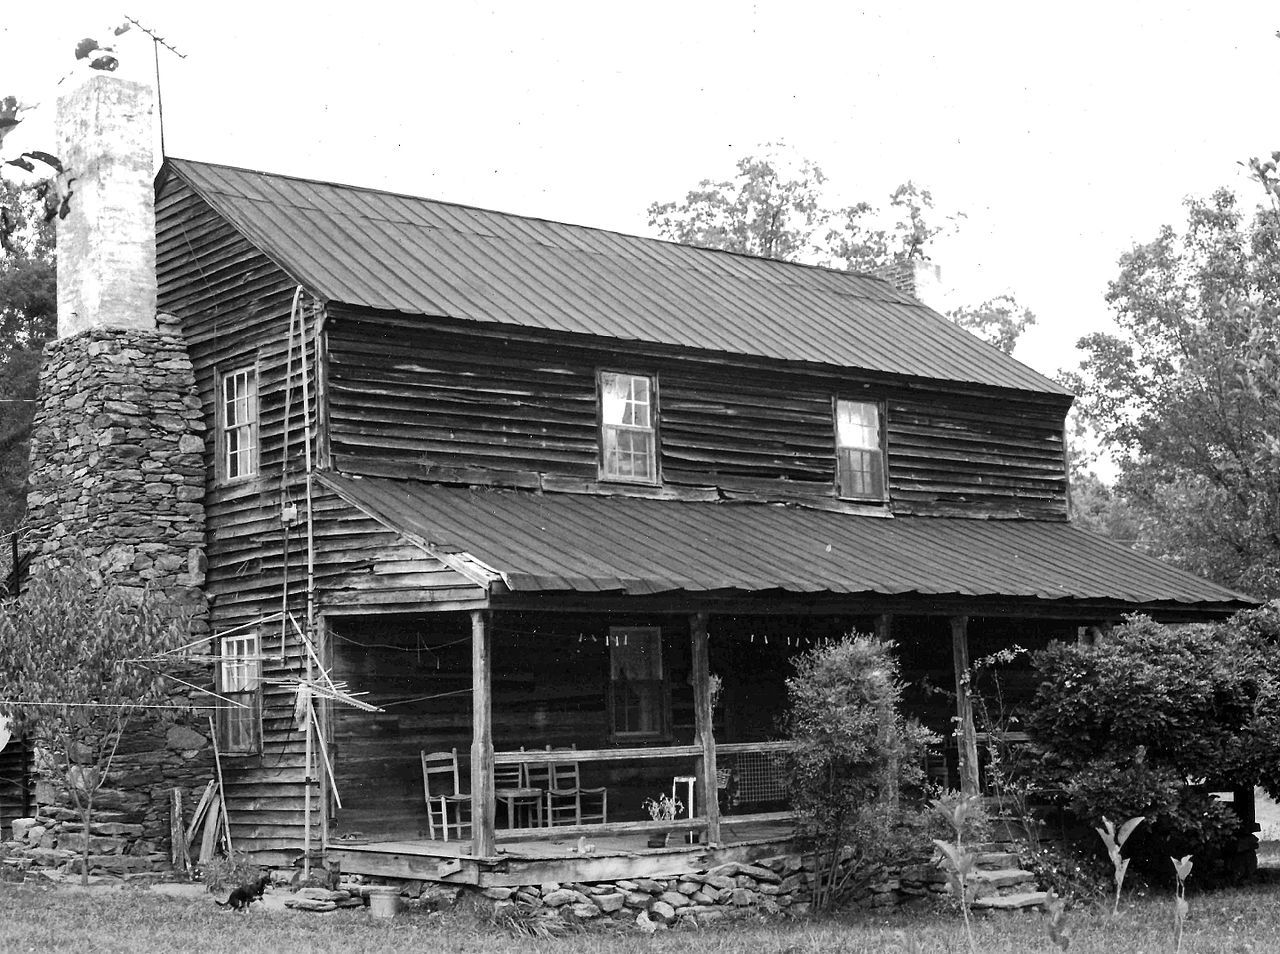 Perciphull Campbell House in Iredell County, North Carolina.